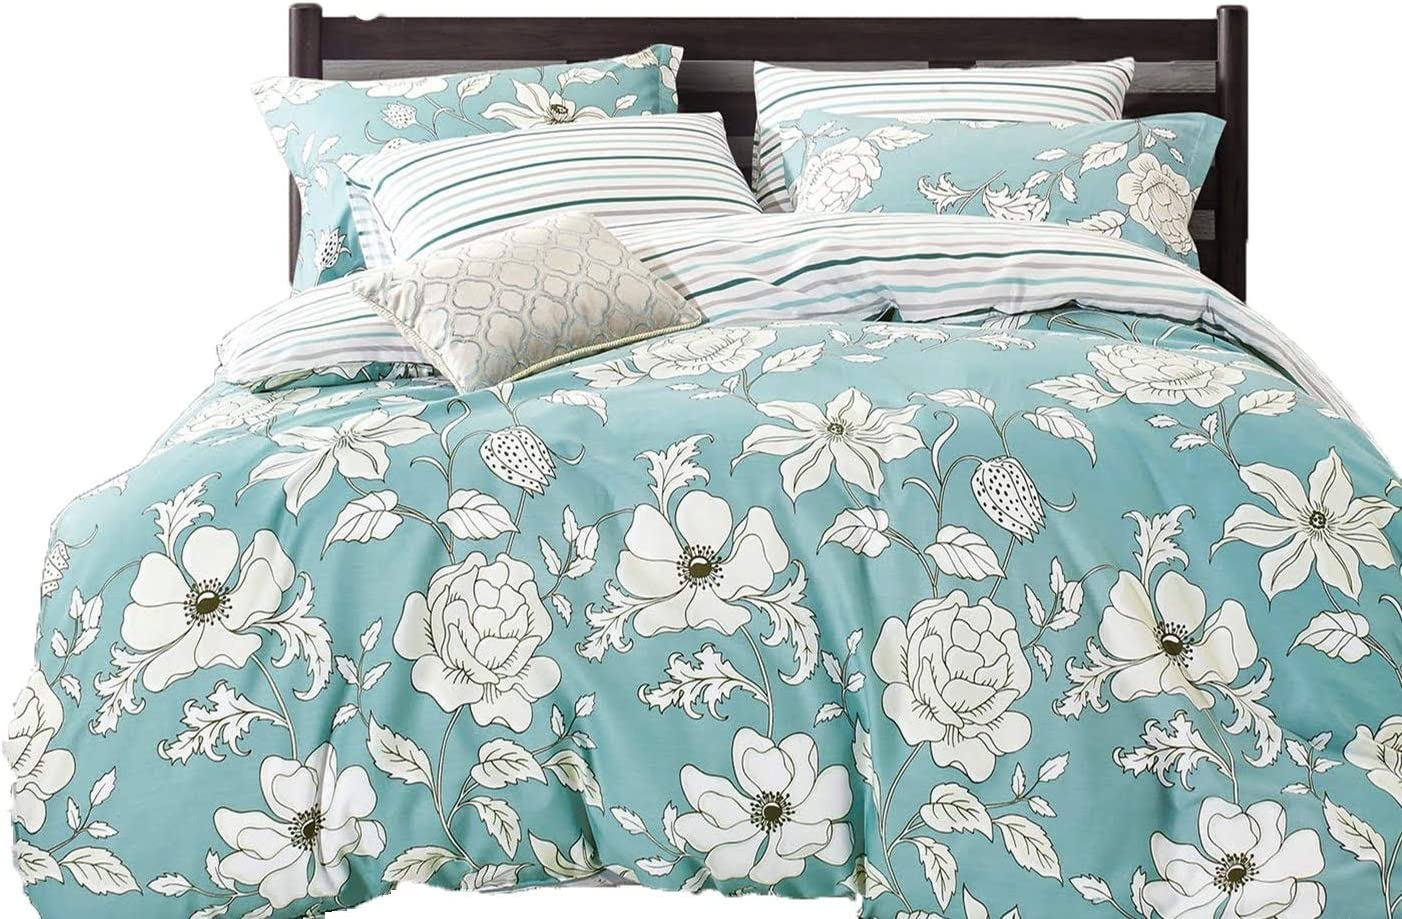 Swanson Beddings Blue Floral 3-Piece 100% Cotton Bedding Set: Duvet Cover and Two Pillow Shams (Queen)